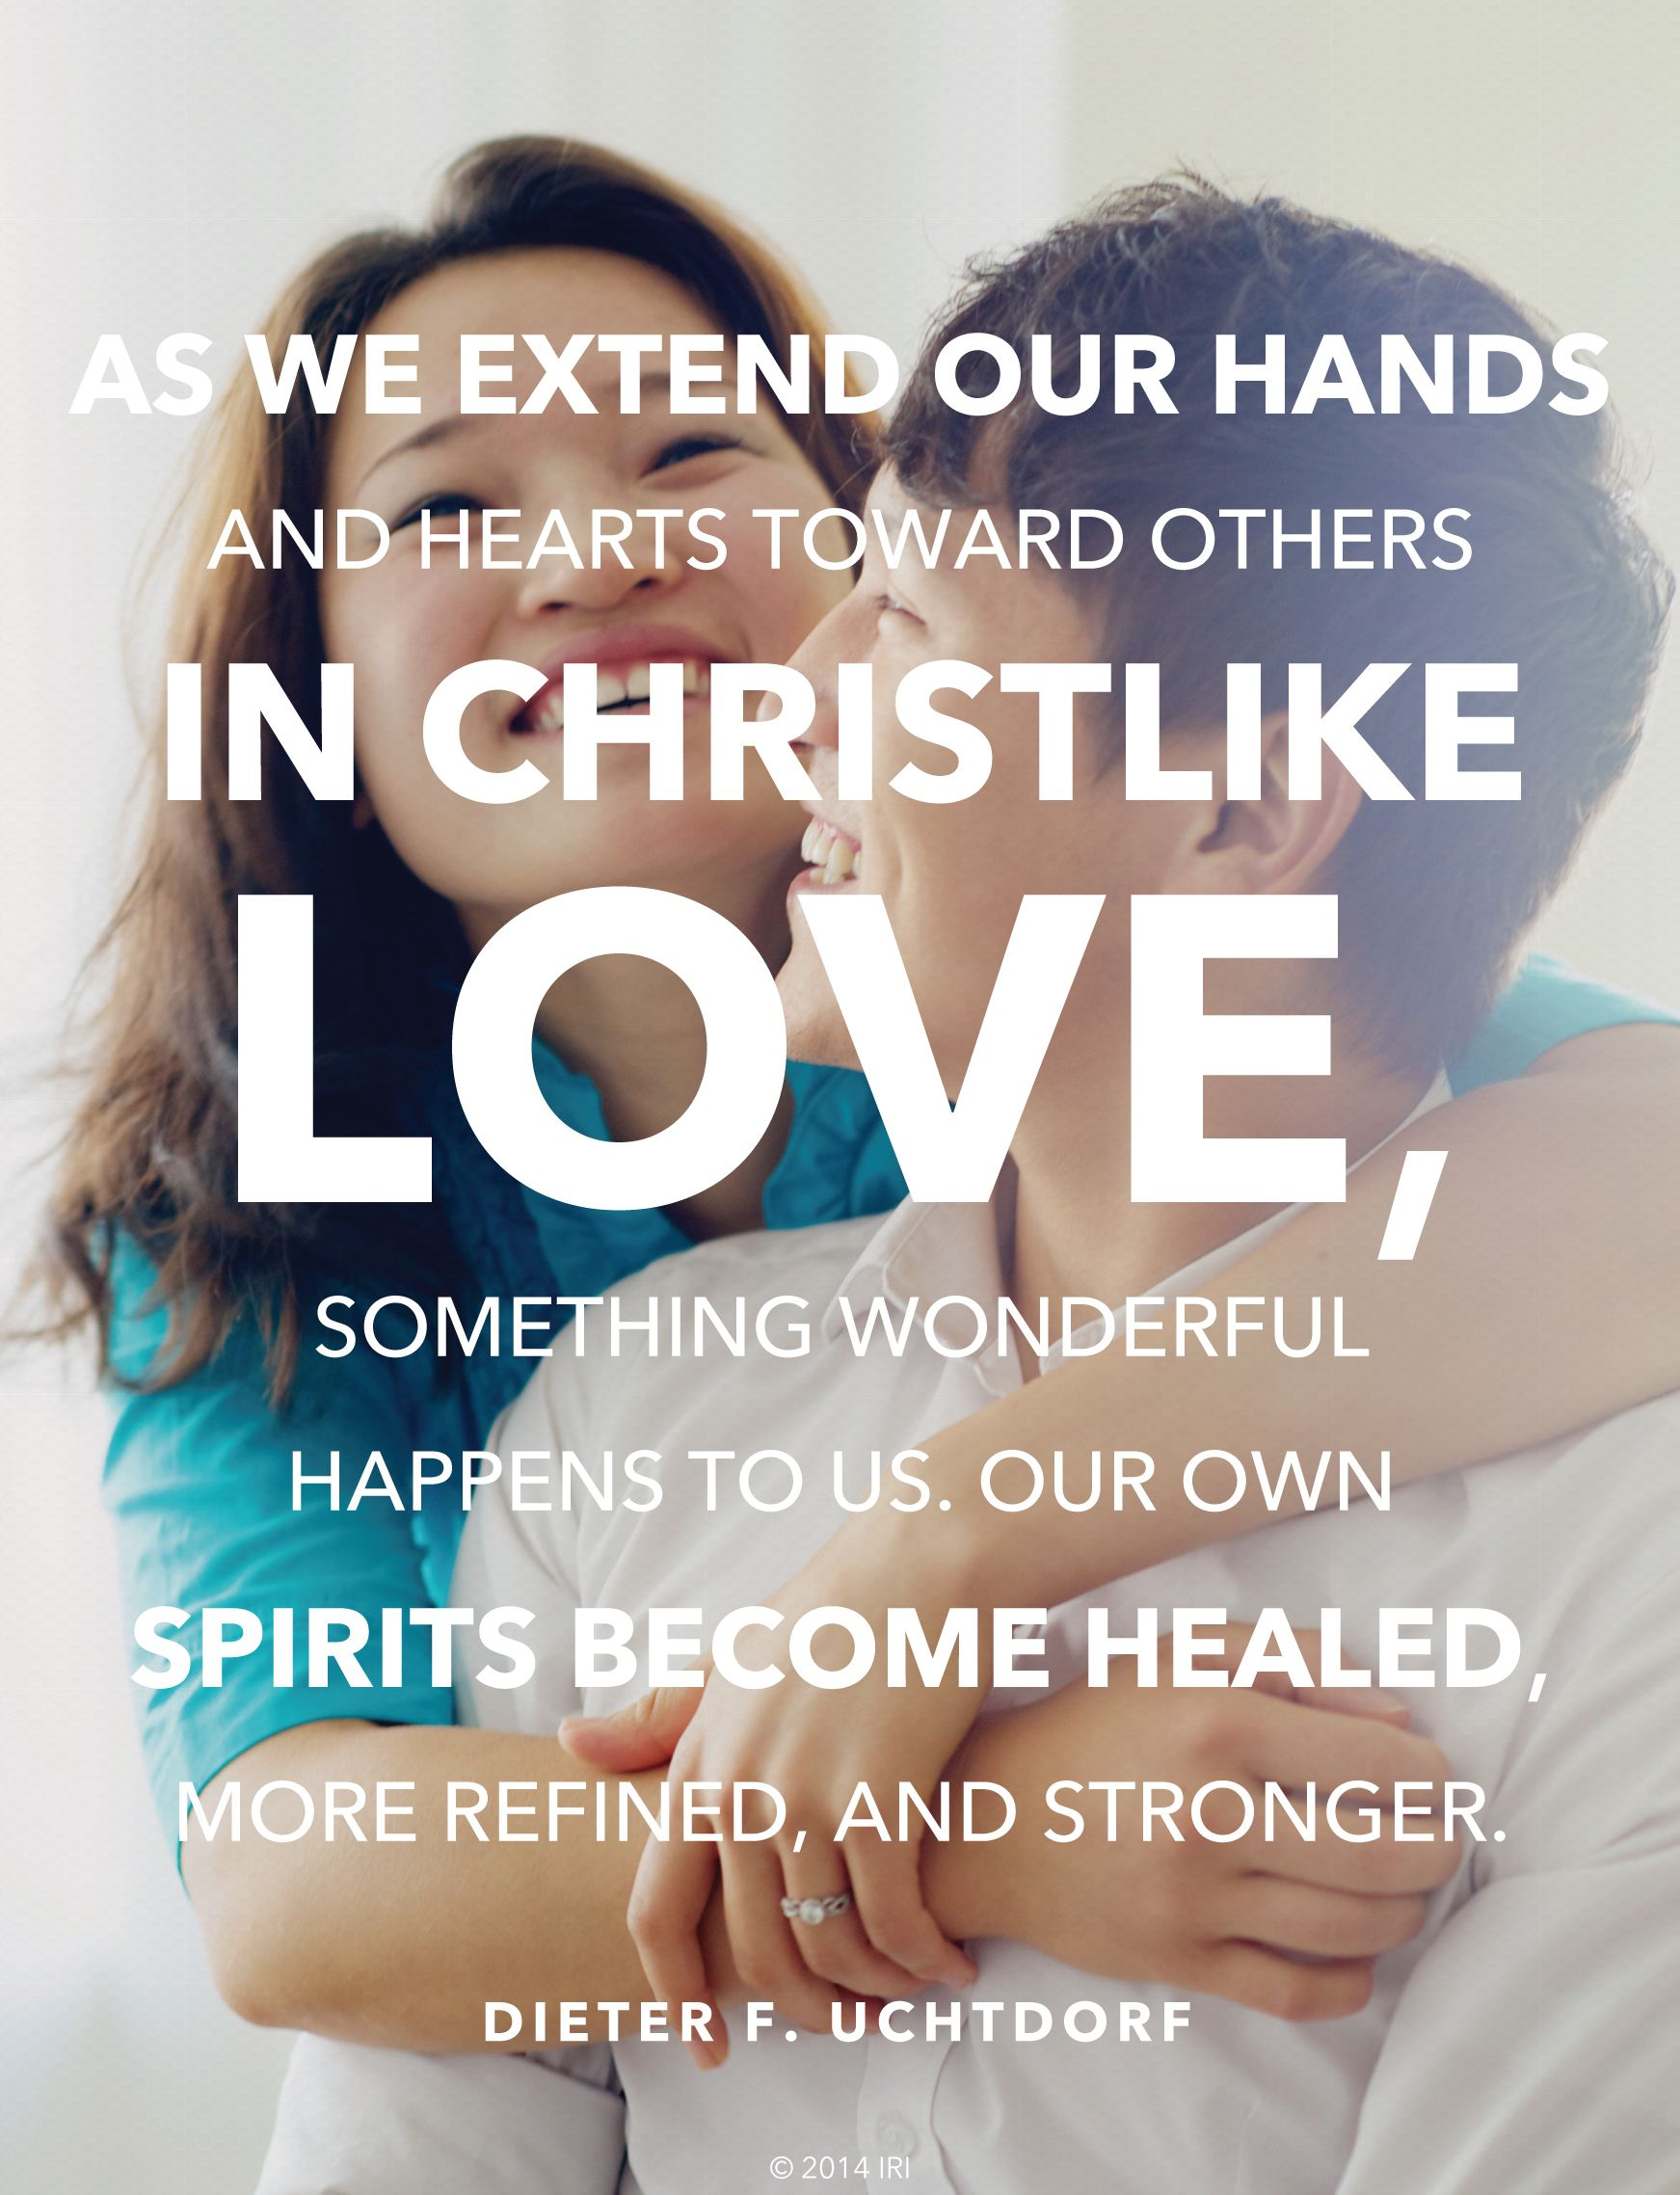 As we extend our hands in Christlike love spirits be e healed